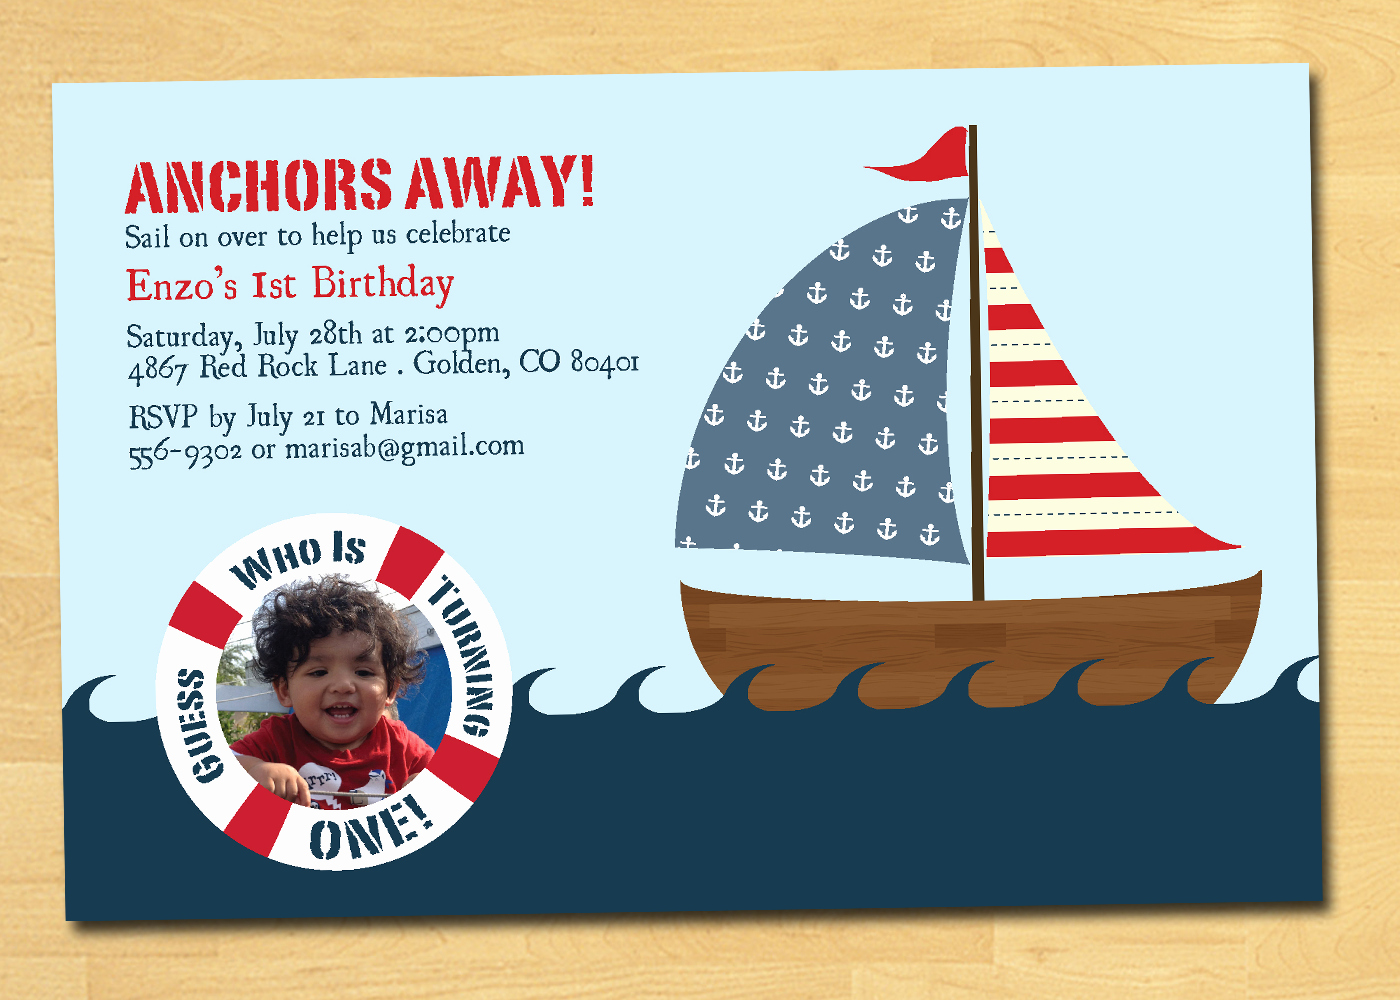 Nautical Invitation Template Free Awesome Nautical Birthday Invitation with by thepaperplume